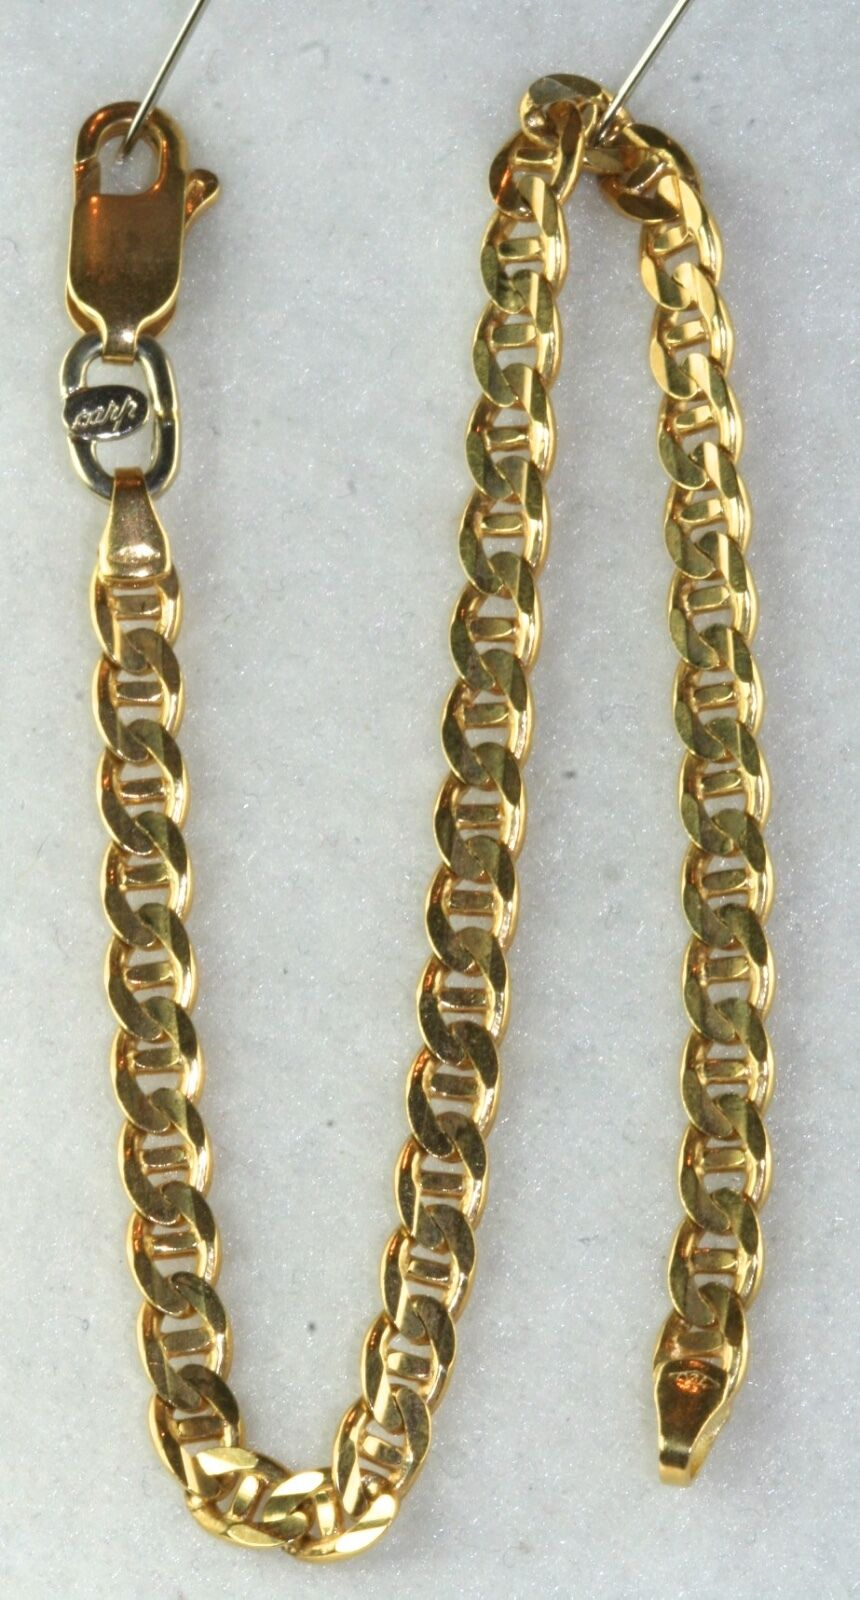 ITALY 18K gold MENS FANCY NAUTICAL LINK BRACELET 8.25 INCH 10.8 GRAMS